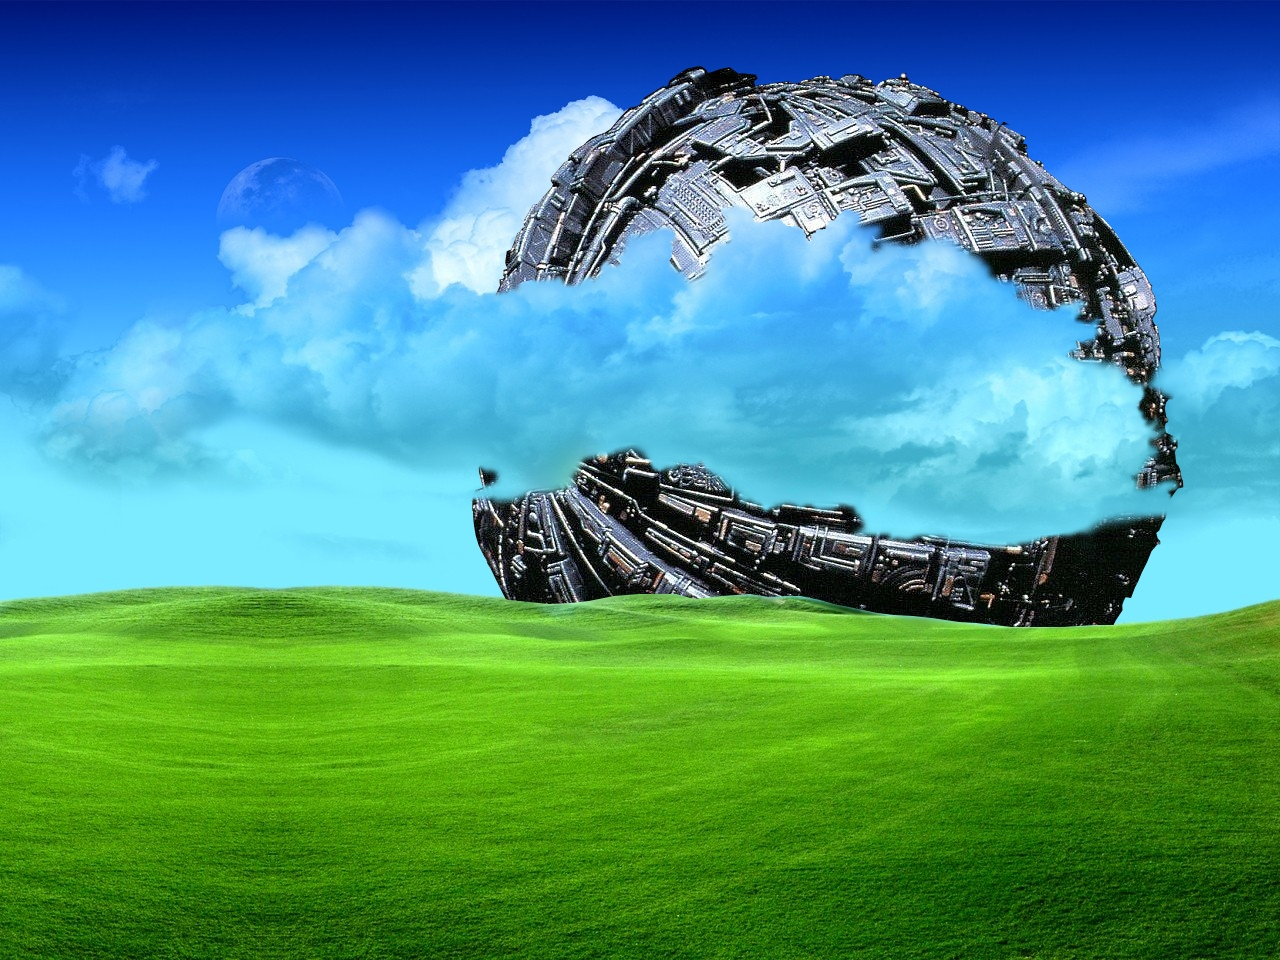 Scenery wallpaper fond d 39 cran paysage science fiction for Paysage wallpaper